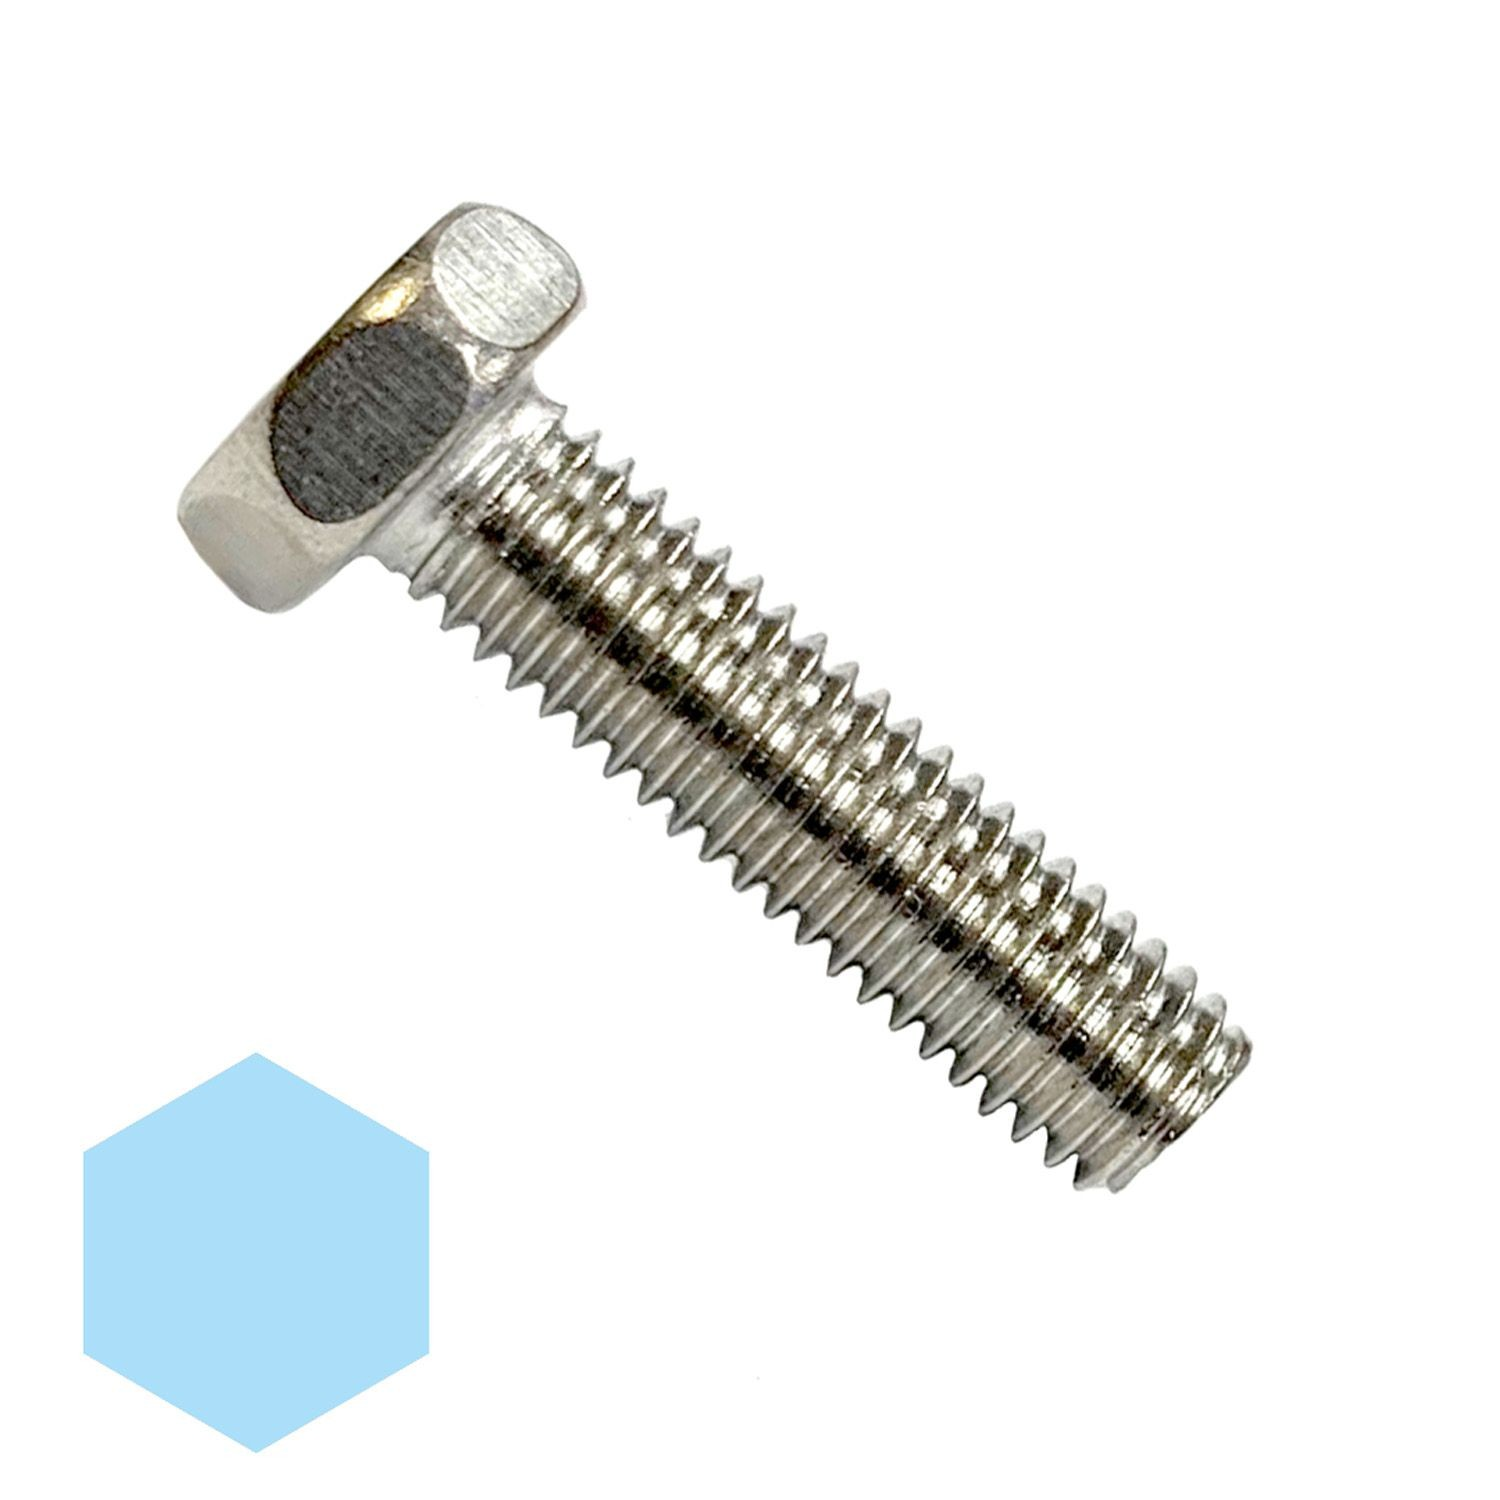 "#10-24 x 1-1/2"" Stainless Steel Hex Head Machine Screw 18-8"